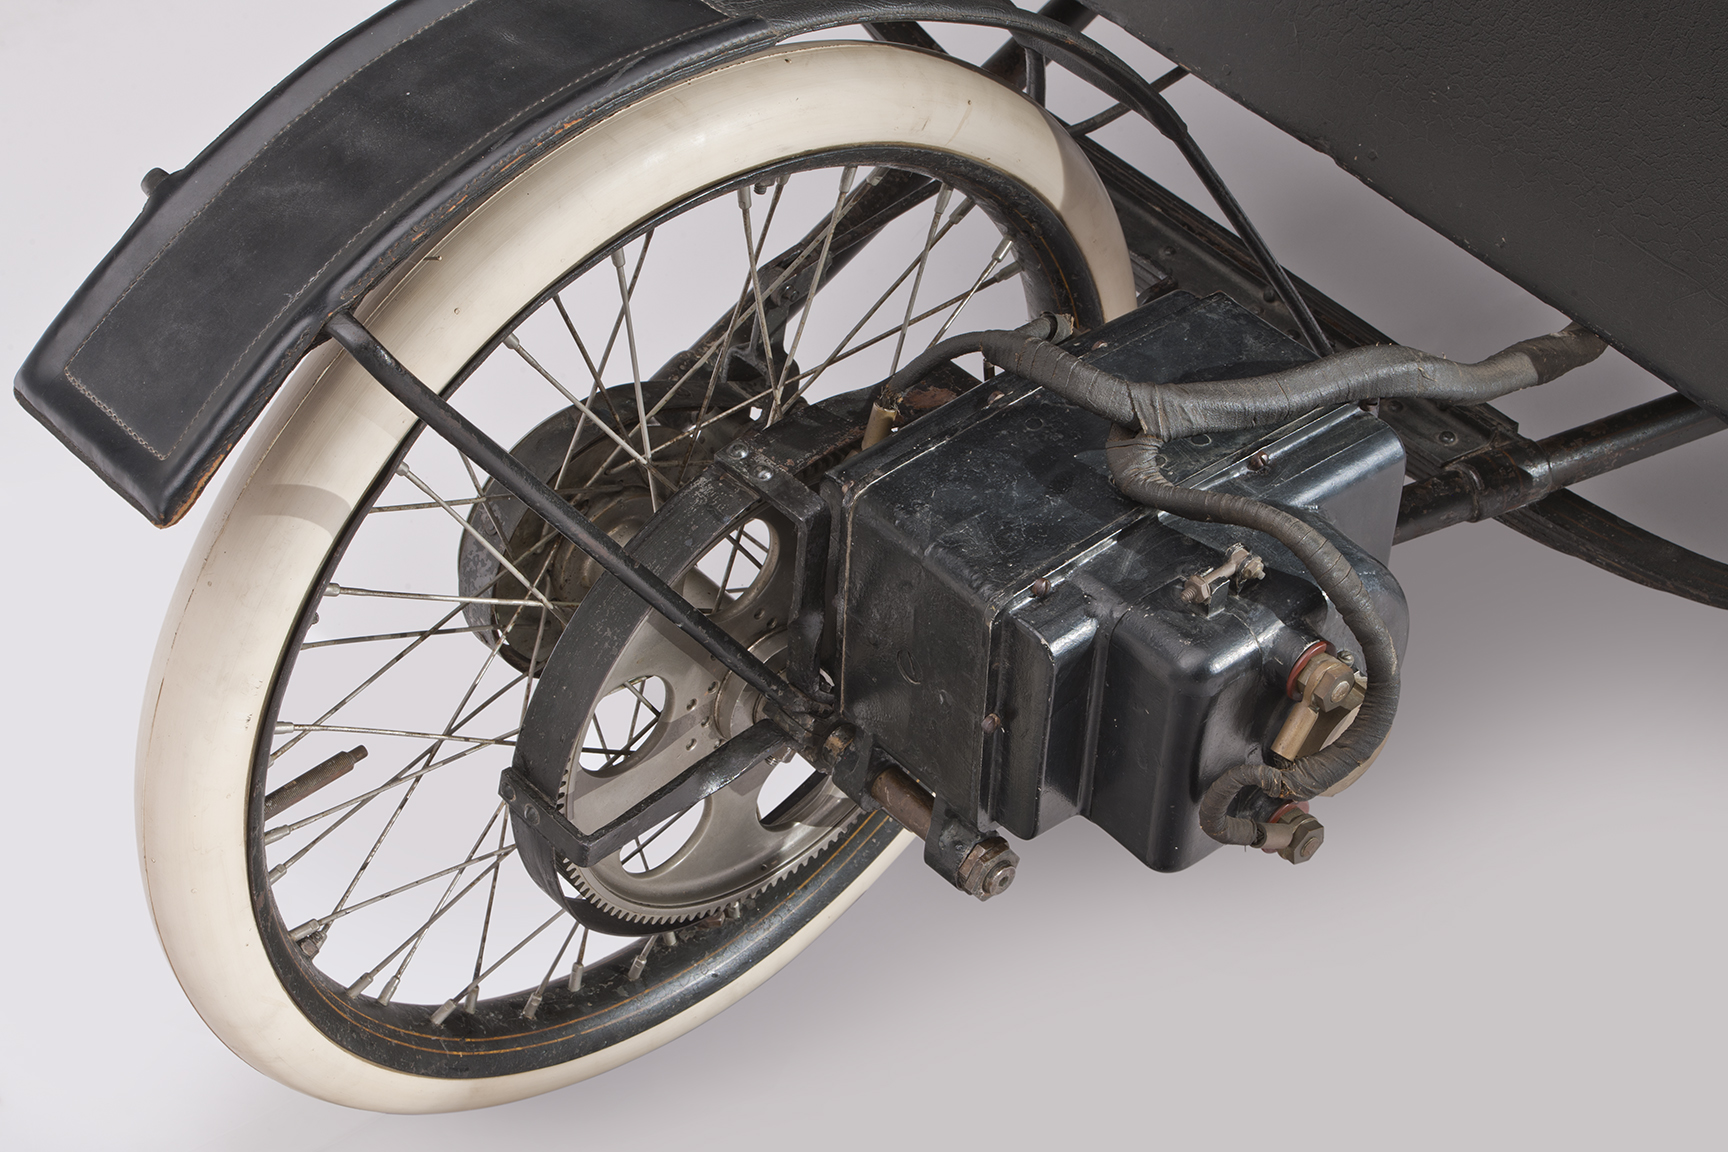 1896 Riker Electric Runabout engine